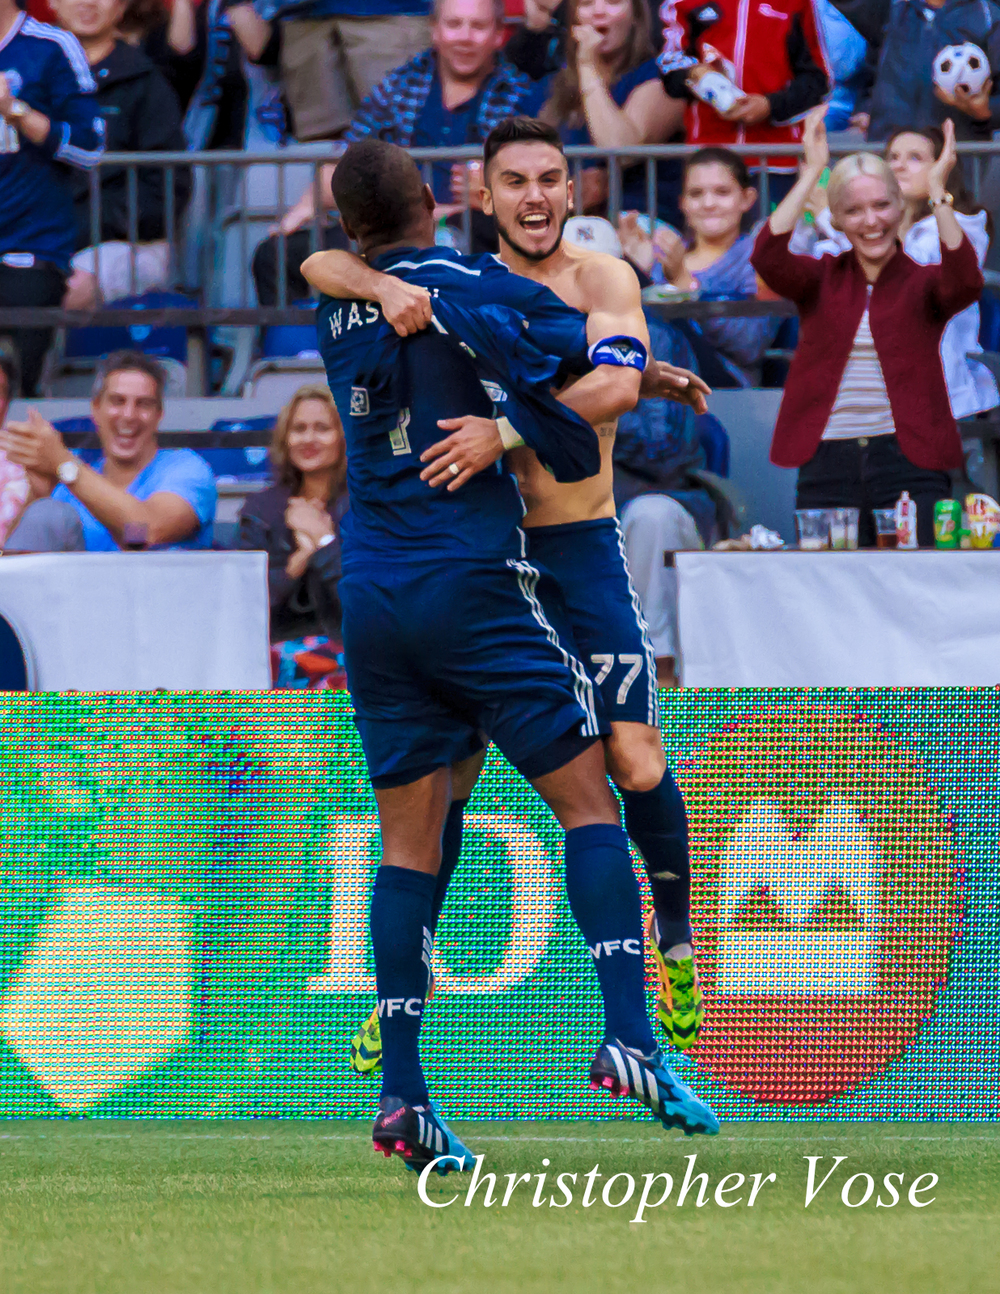 2014-09-27 Pedro Morales Second Goal Celebration.jpg